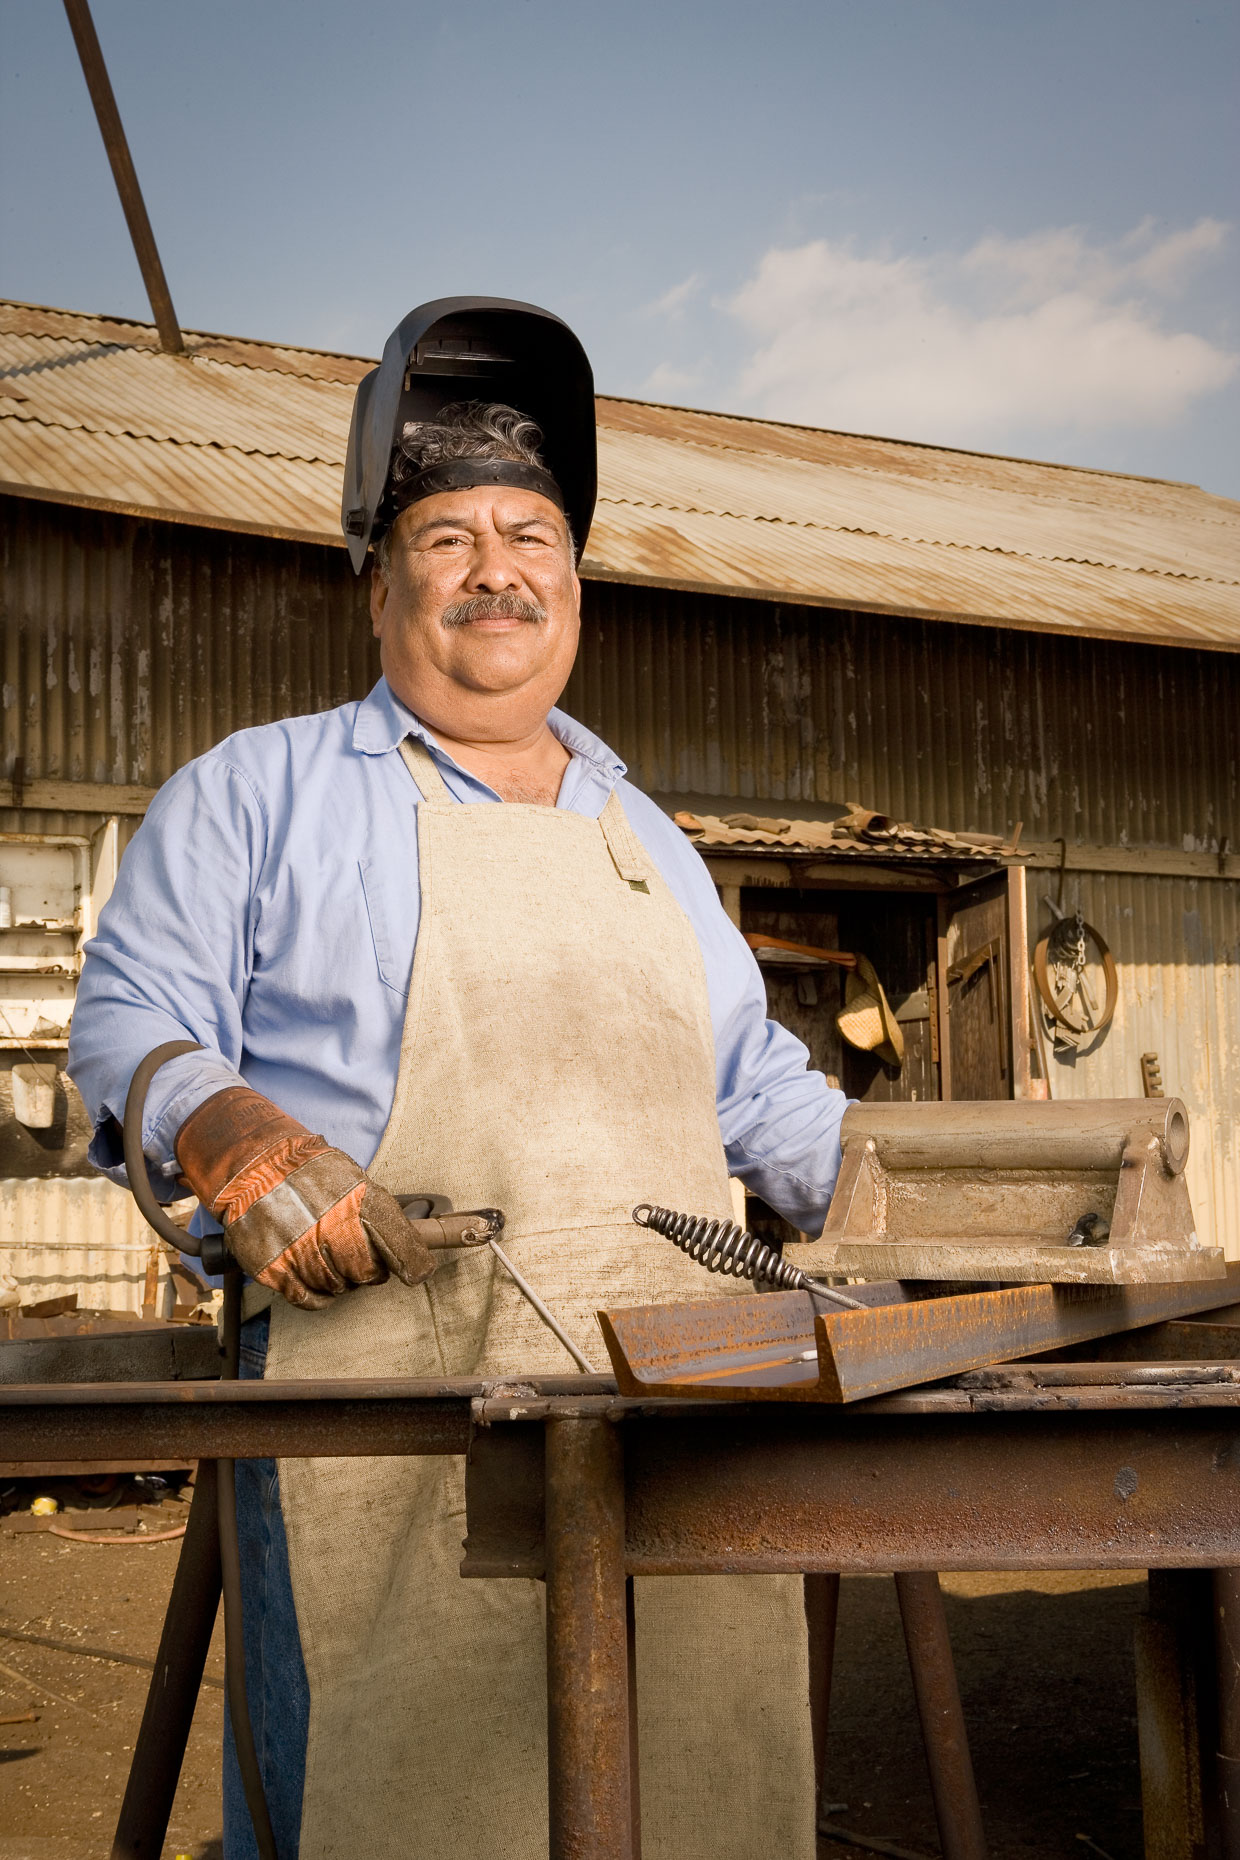 Environmental portrait of welder worker in iron works setting by David Zaitz